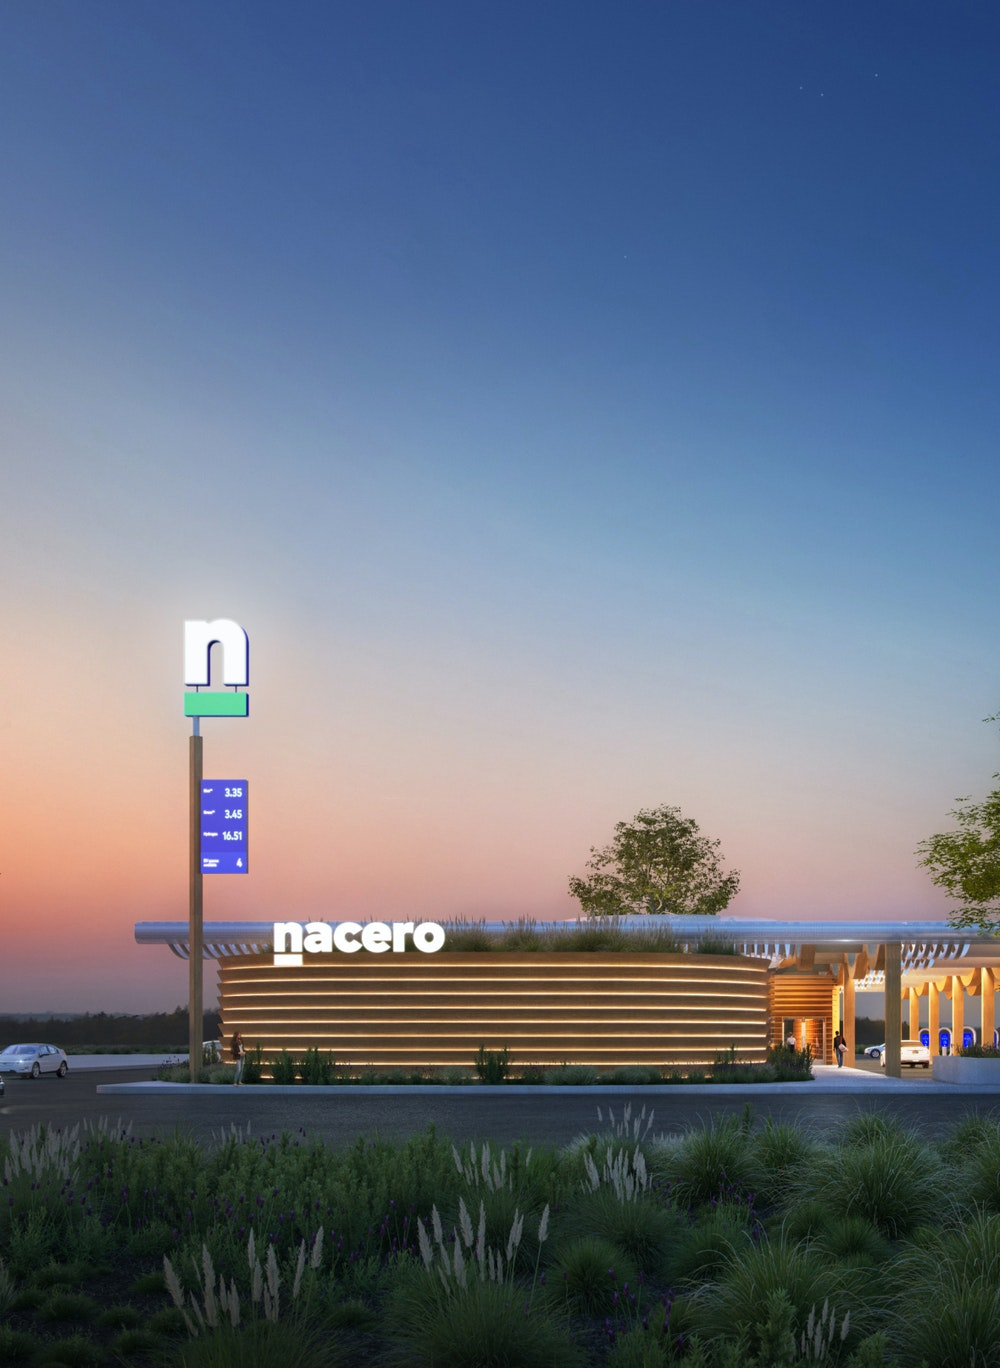 A photo-realistic rendering of the future Nacero gasoline station at dusk